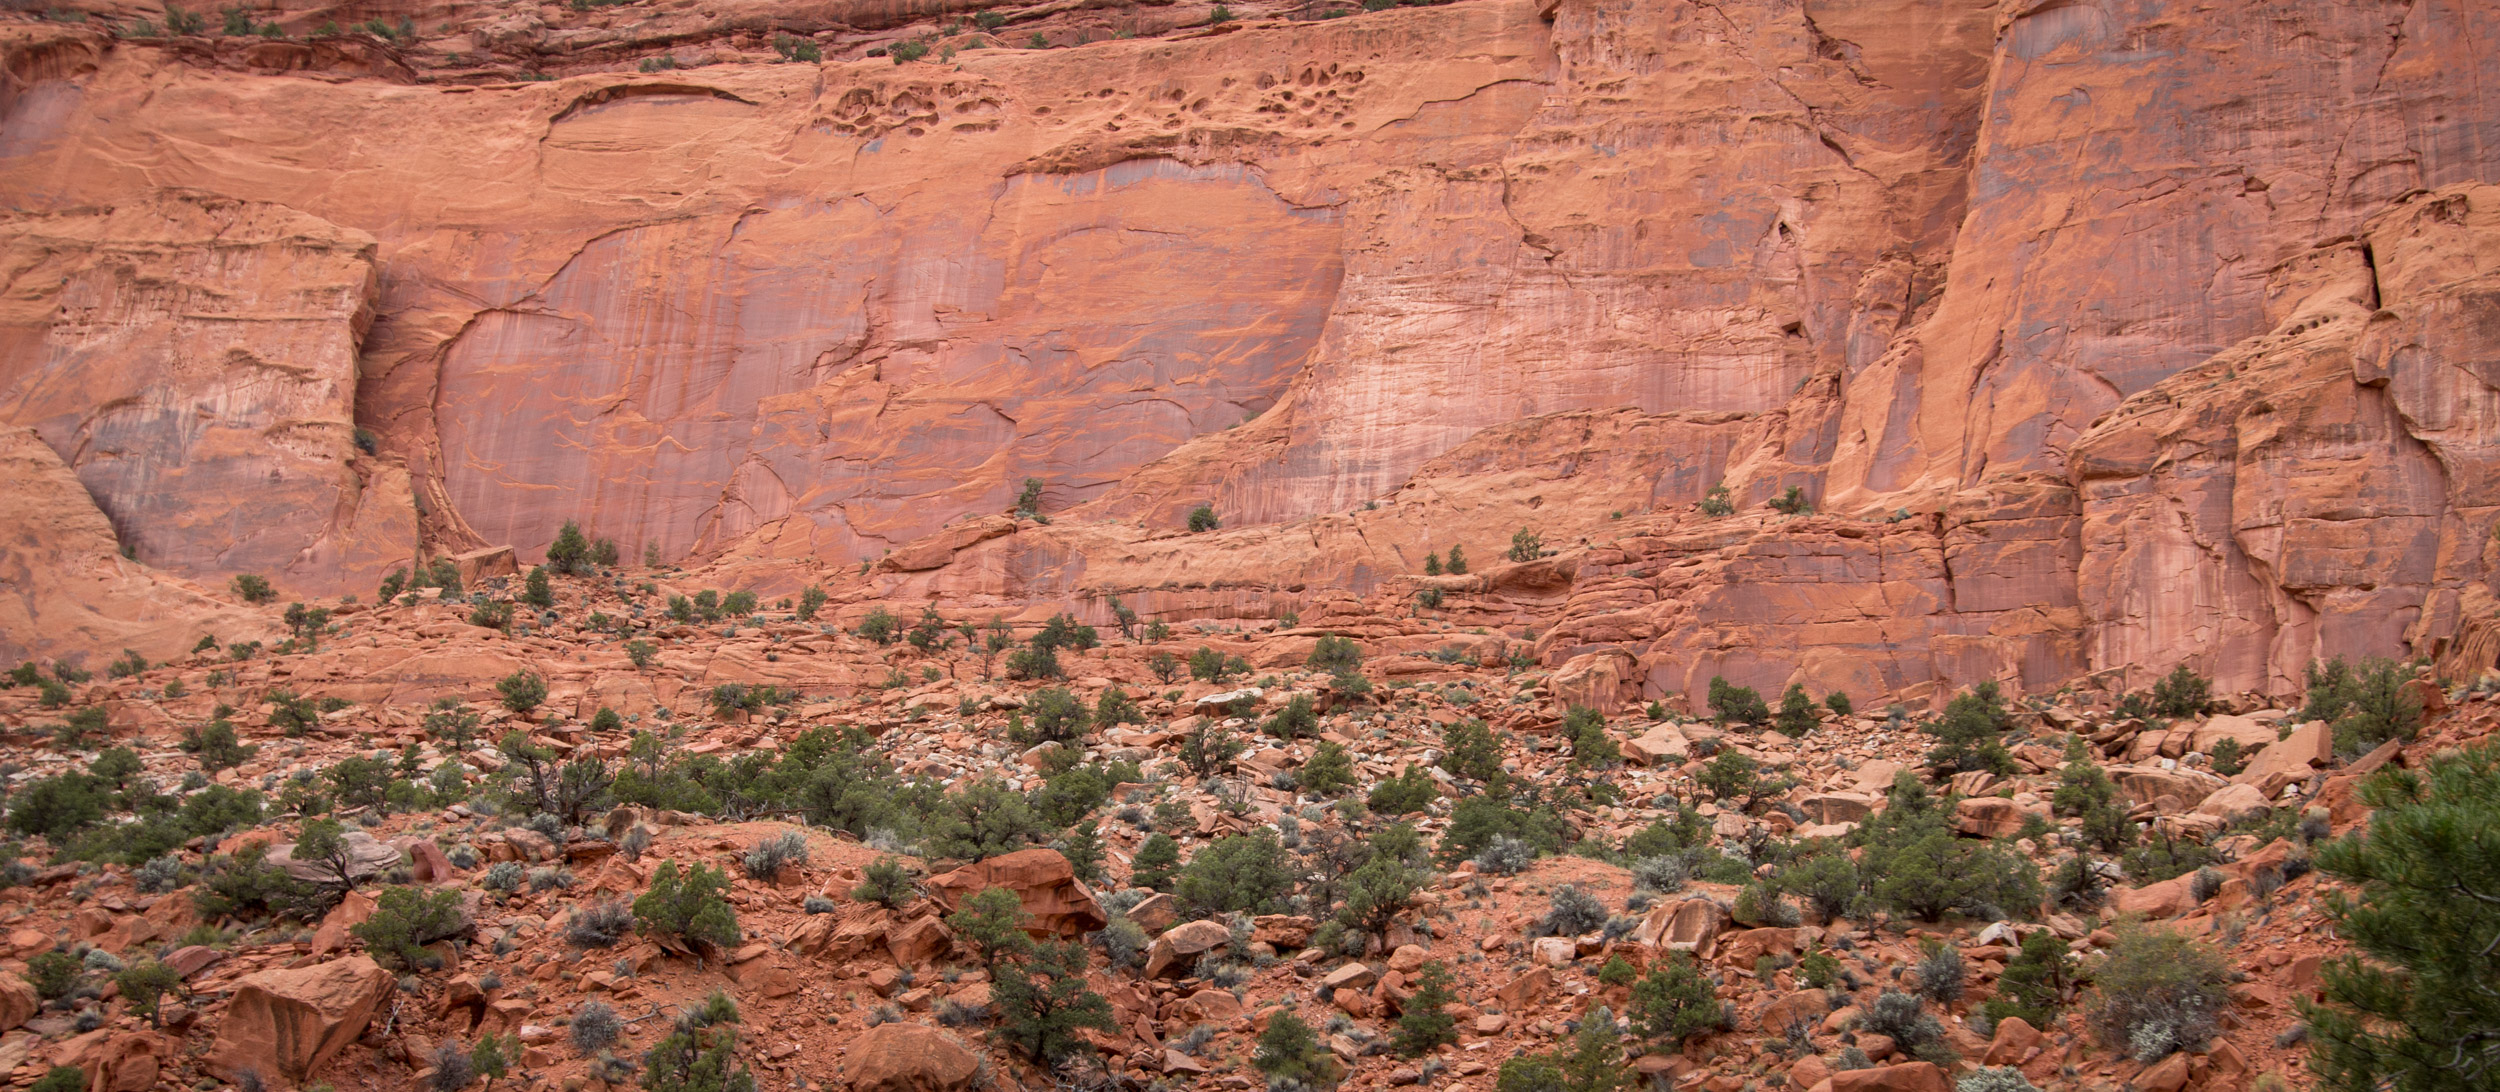 Canyon wall along the Burr Trail